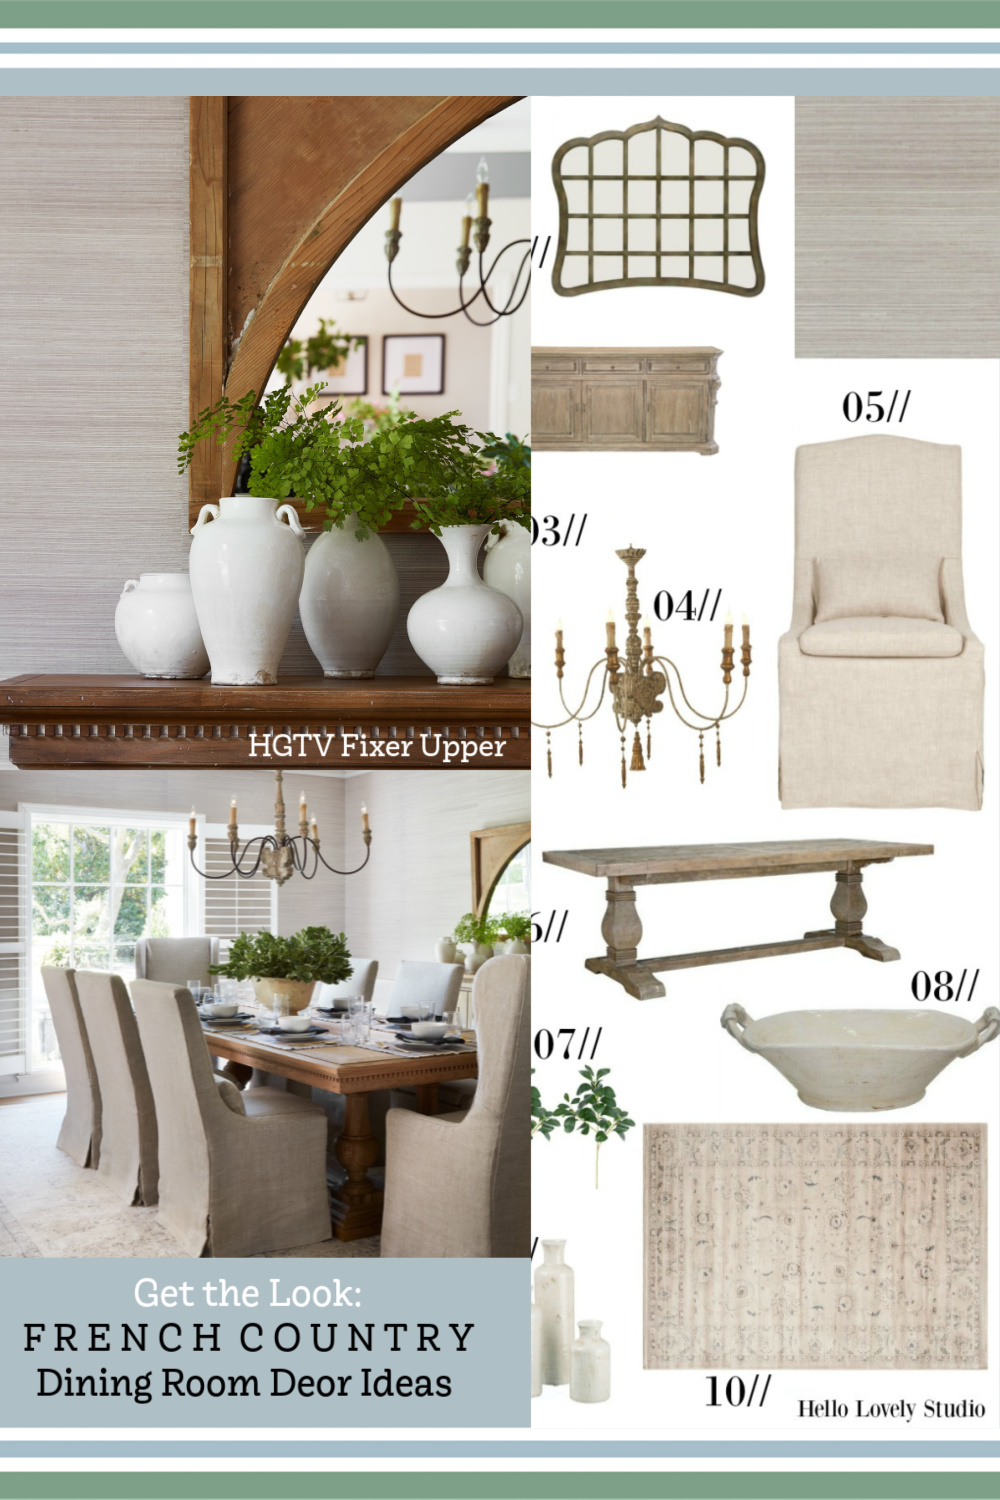 Get the look of the Club House (HGTV Fixer Upper) dining room on Hello Lovely!